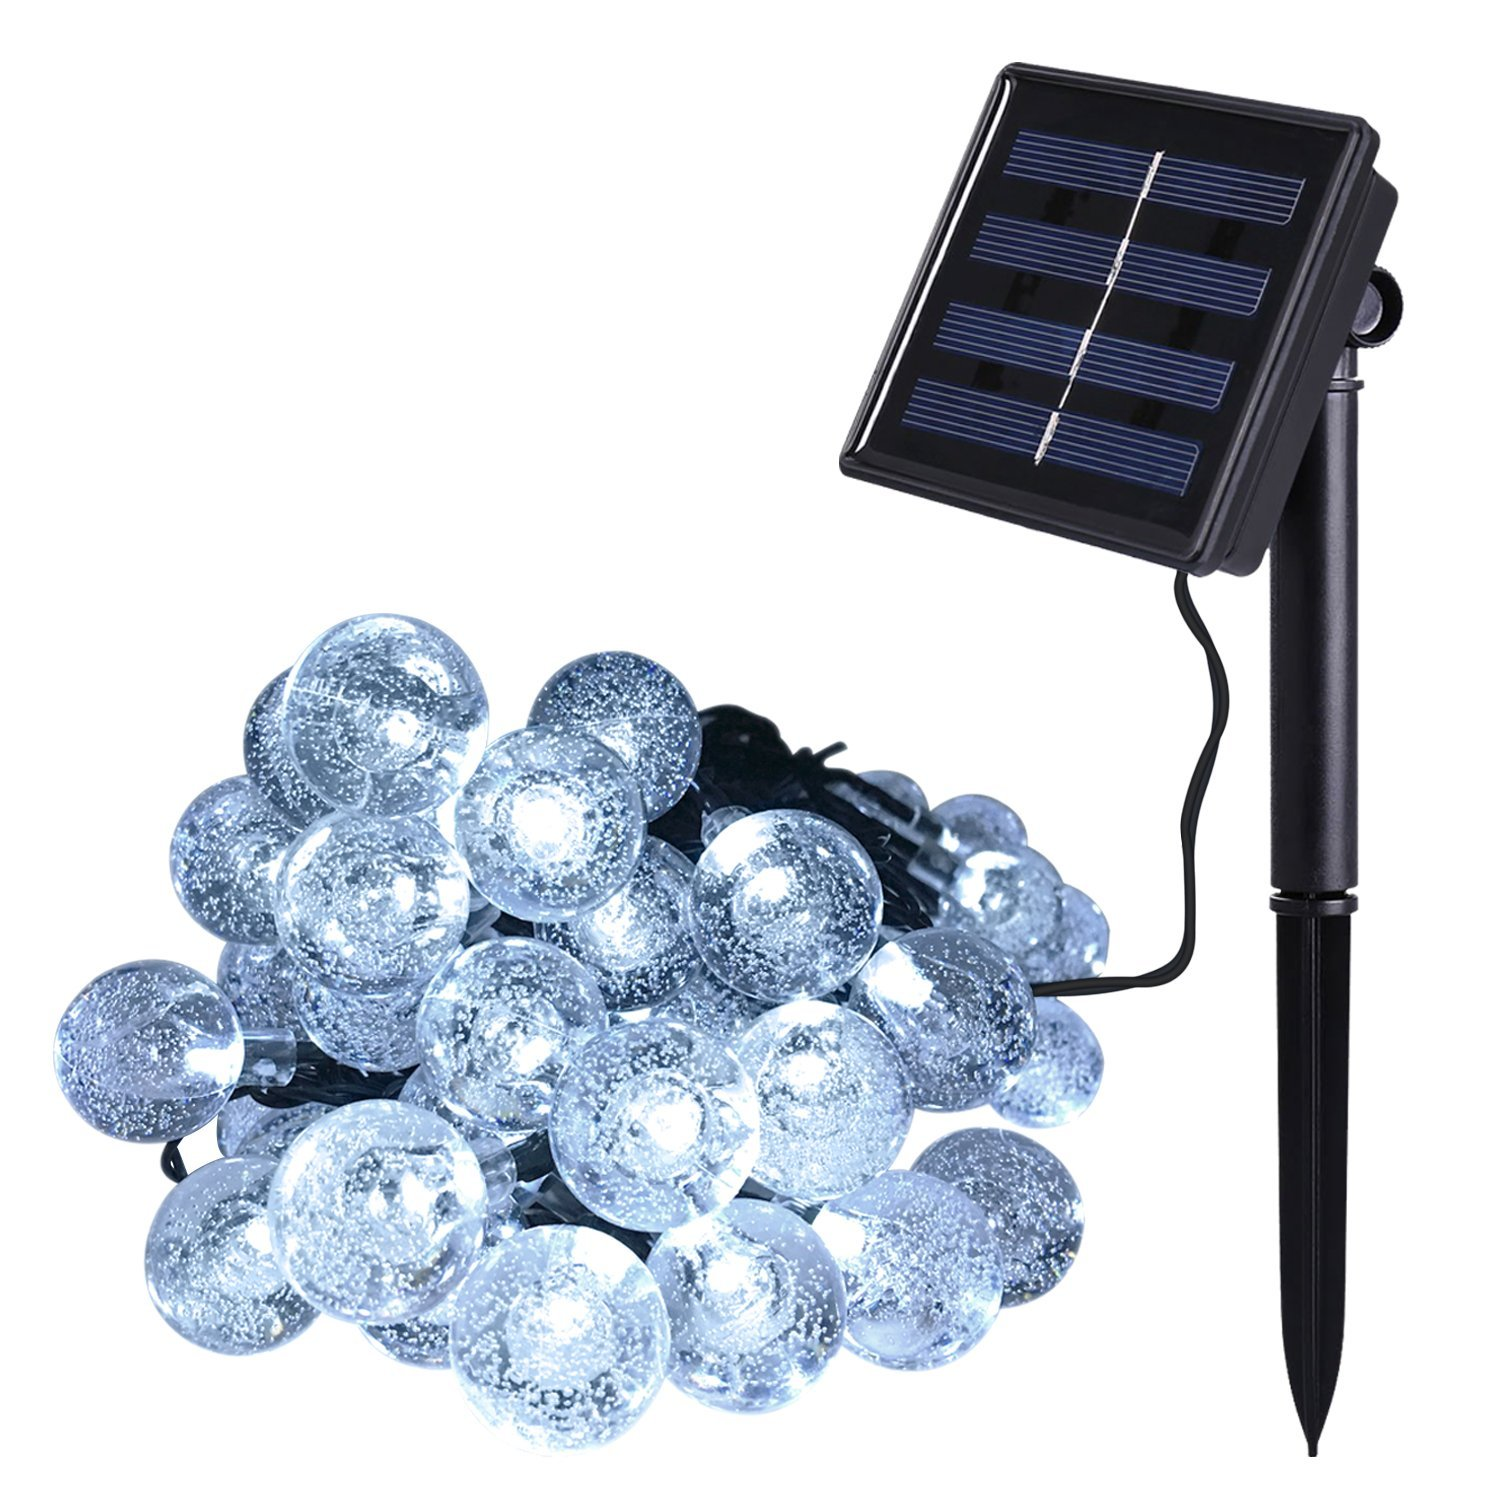 Outdoor solar power decorative string lights anko 30 led for Decorative patio lights